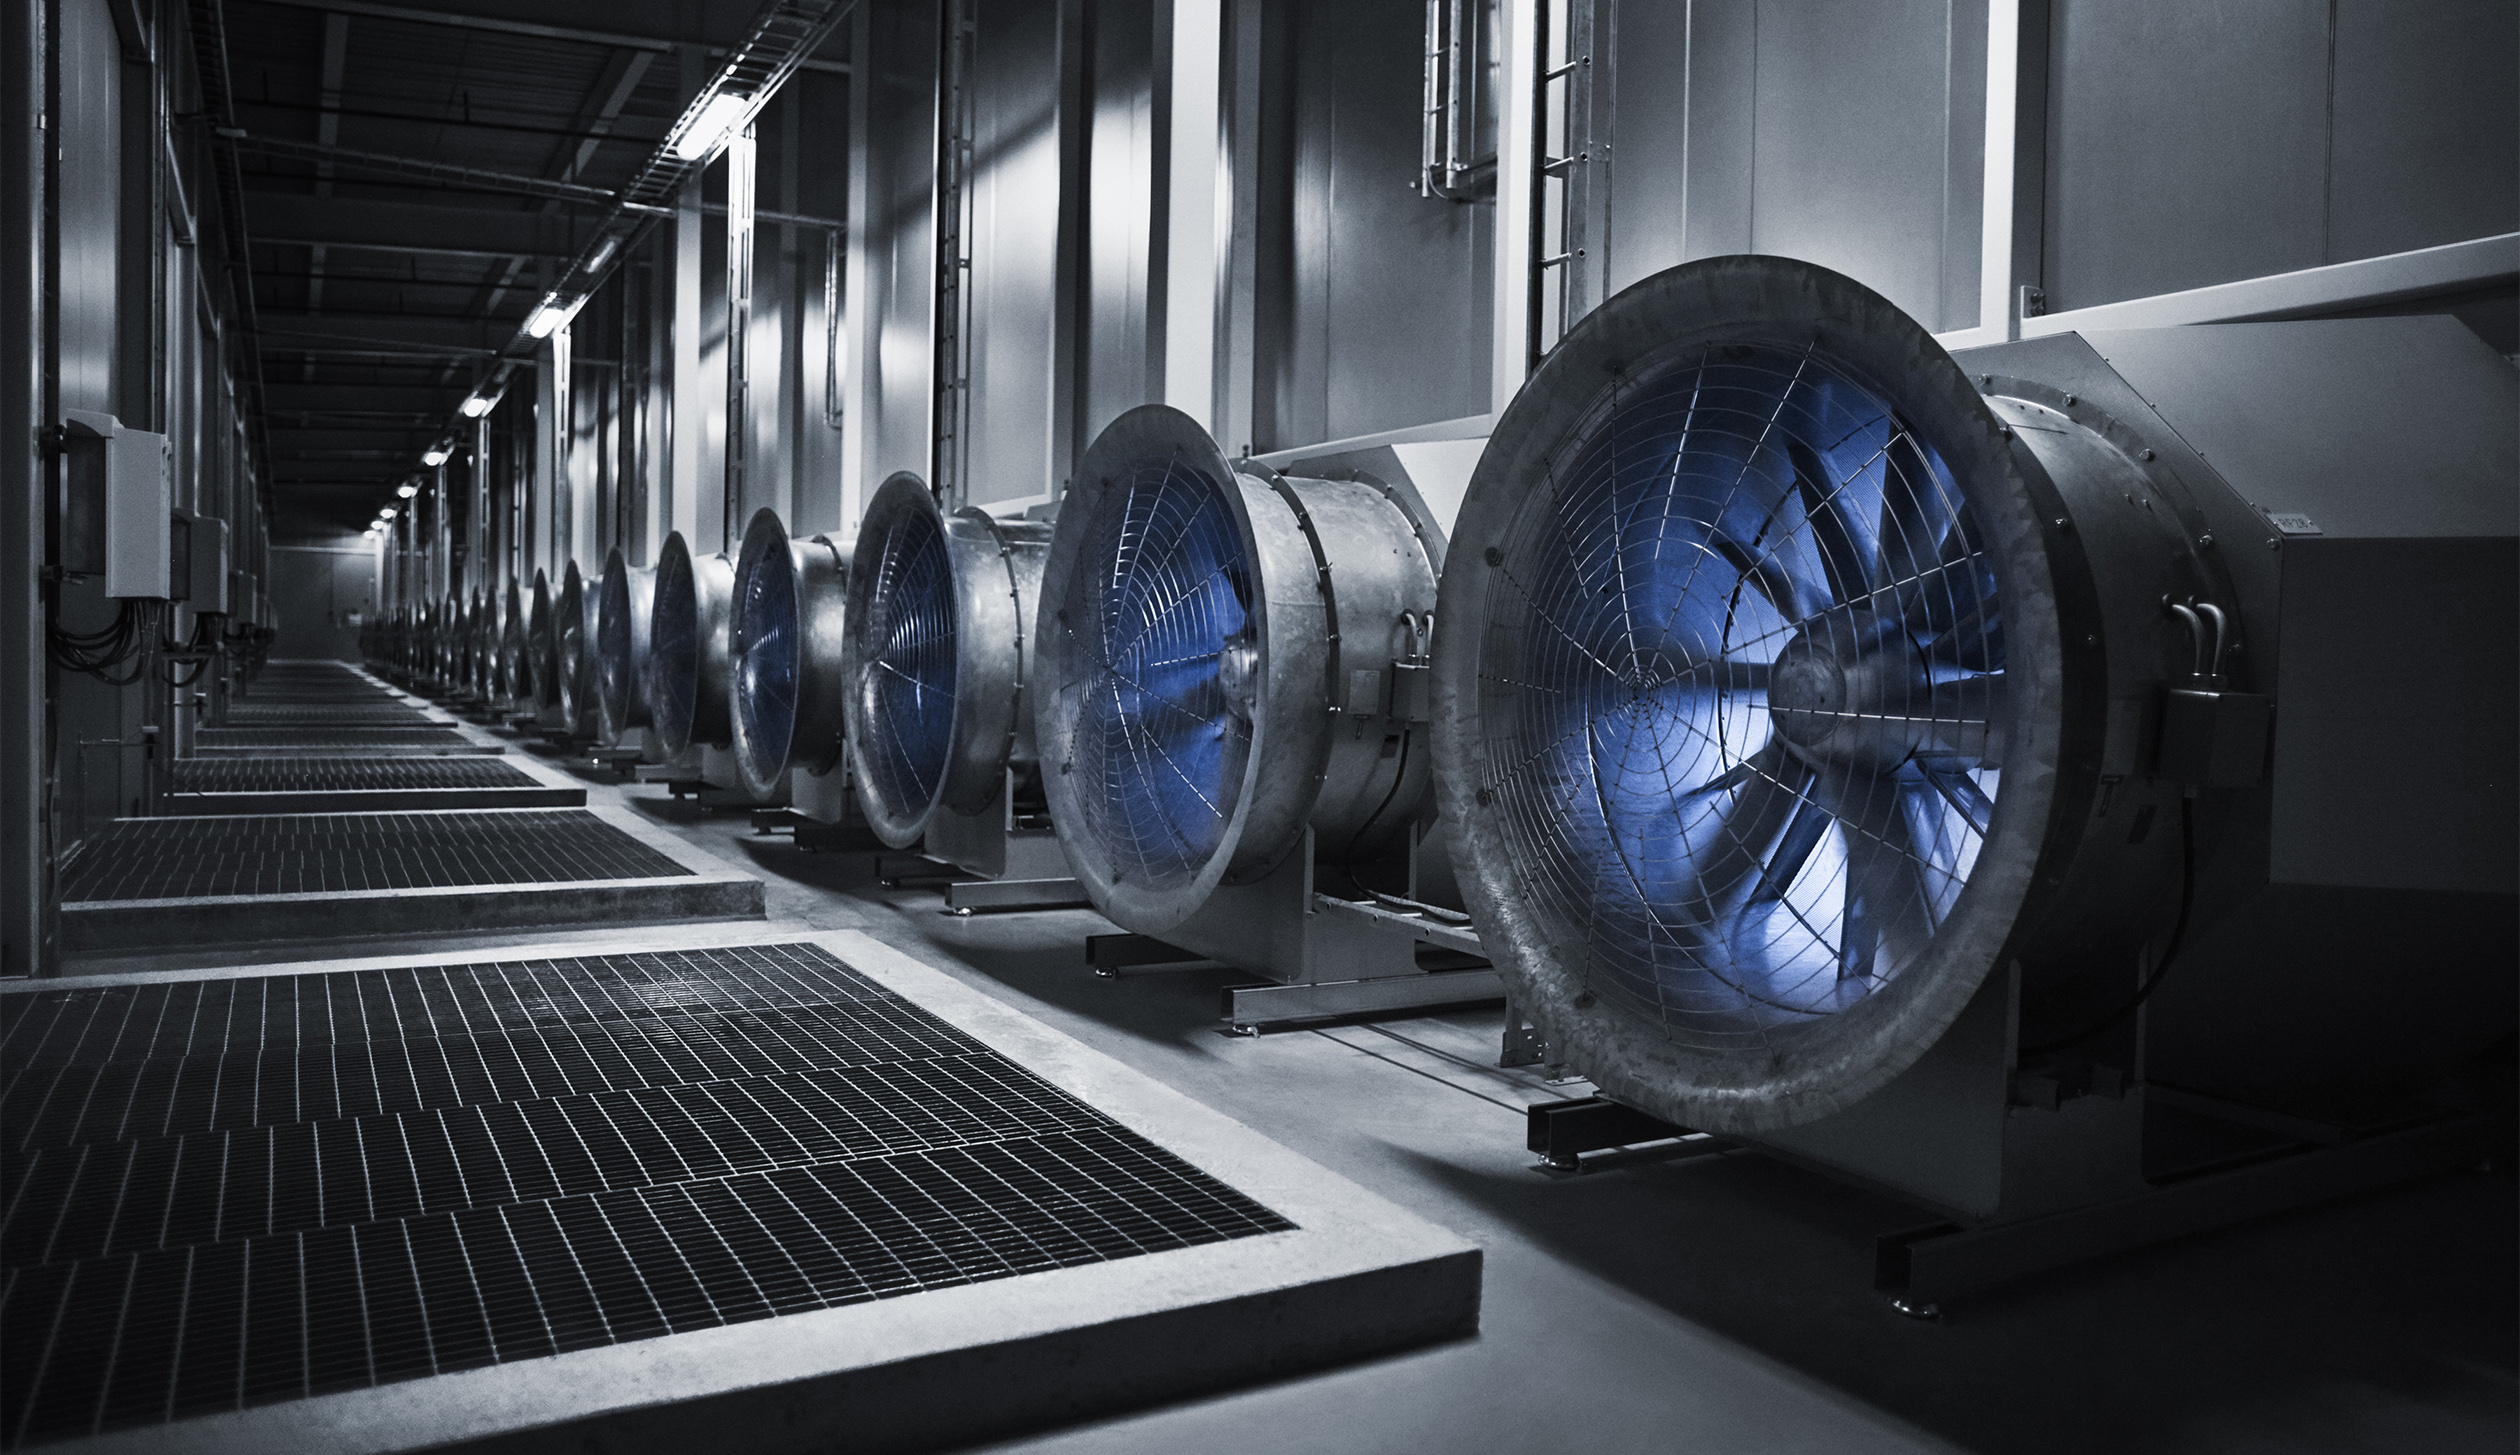 These enormous fans draw in the outside air to cool the servers in the data hall. In the winter, when temperatures plunge to -30 degrees the situation is reversed, and the heat from the servers warm the massive buildings.